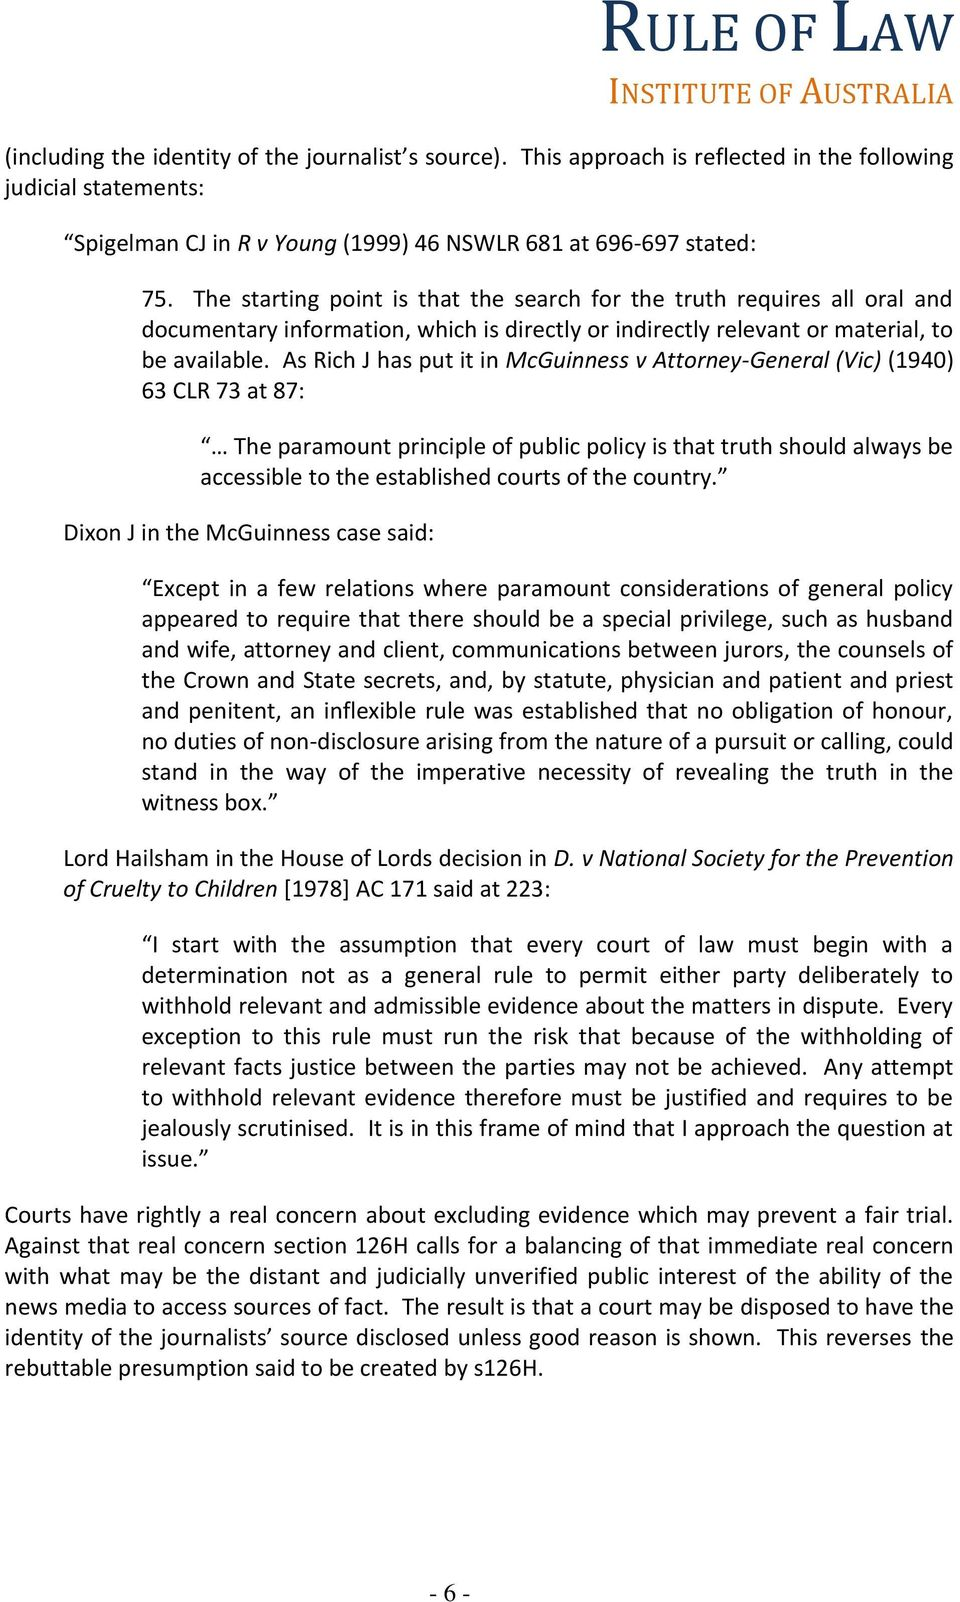 As Rich J has put it in McGuinness v Attorney-General (Vic) (1940) 63 CLR 73 at 87: The paramount principle of public policy is that truth should always be accessible to the established courts of the